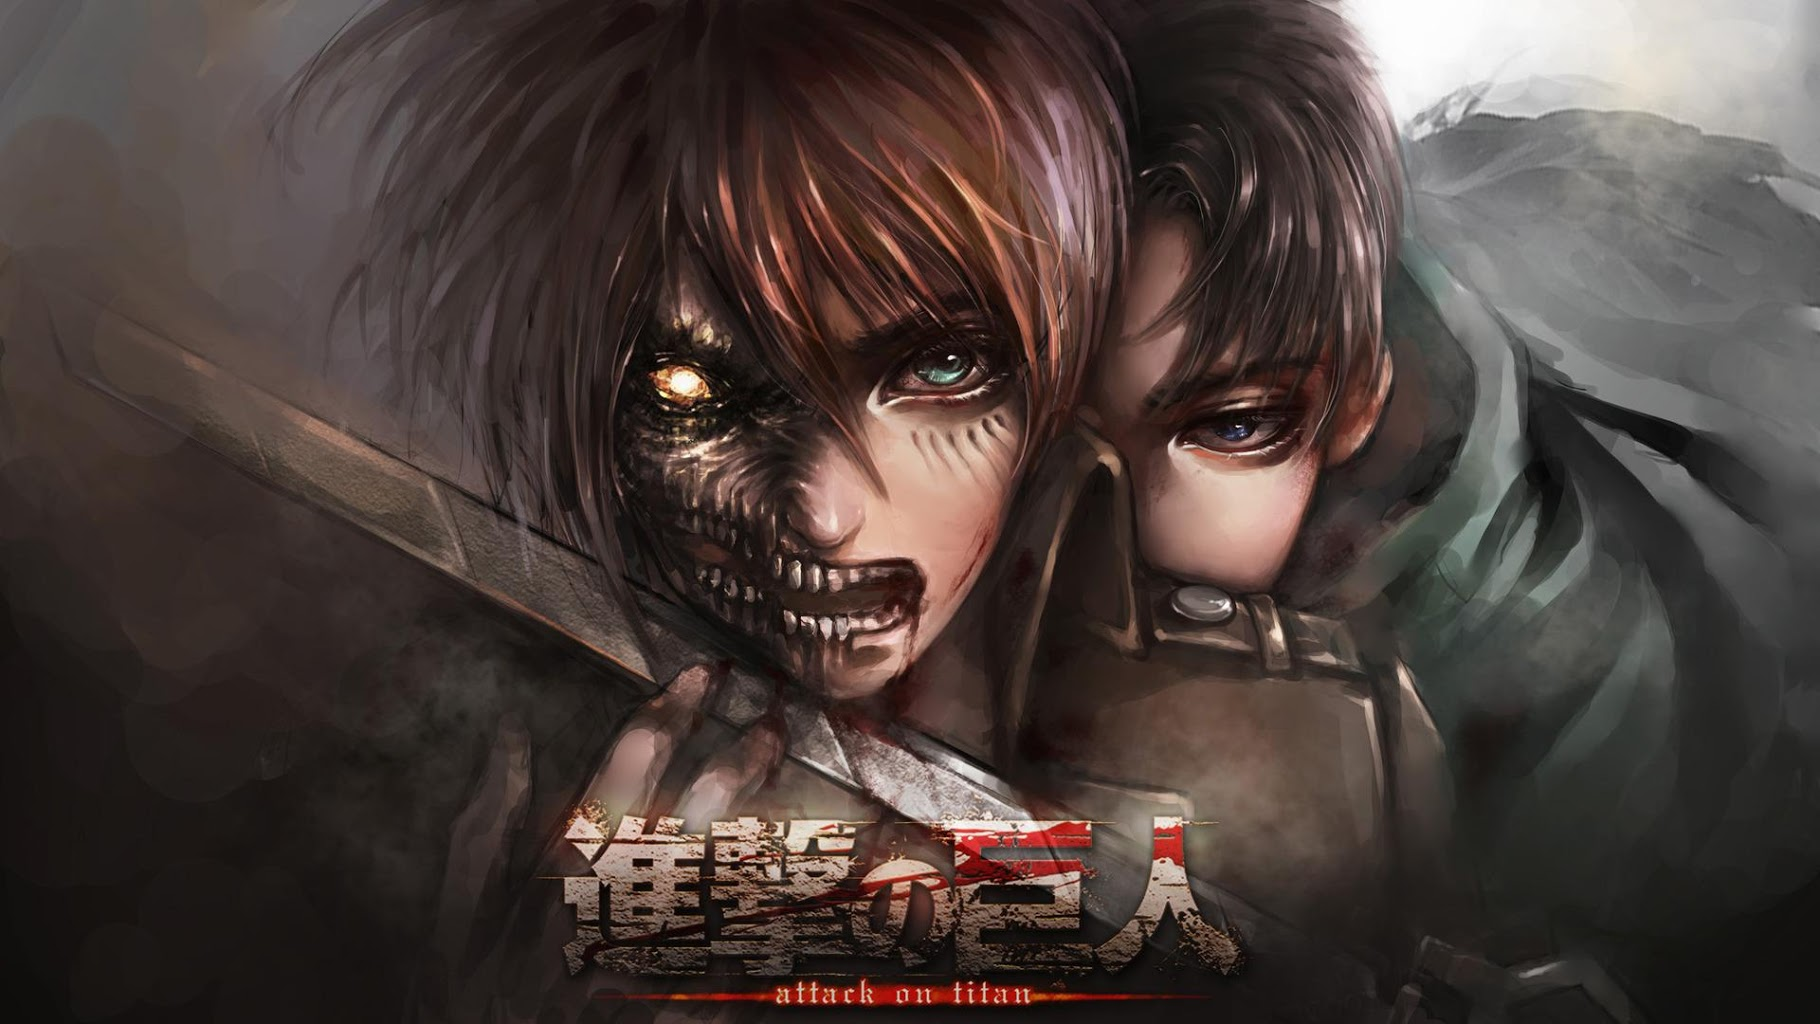 Attack on Titan HD Wallpaper for android Attack on Titan HD Wallpaper 1820x1024